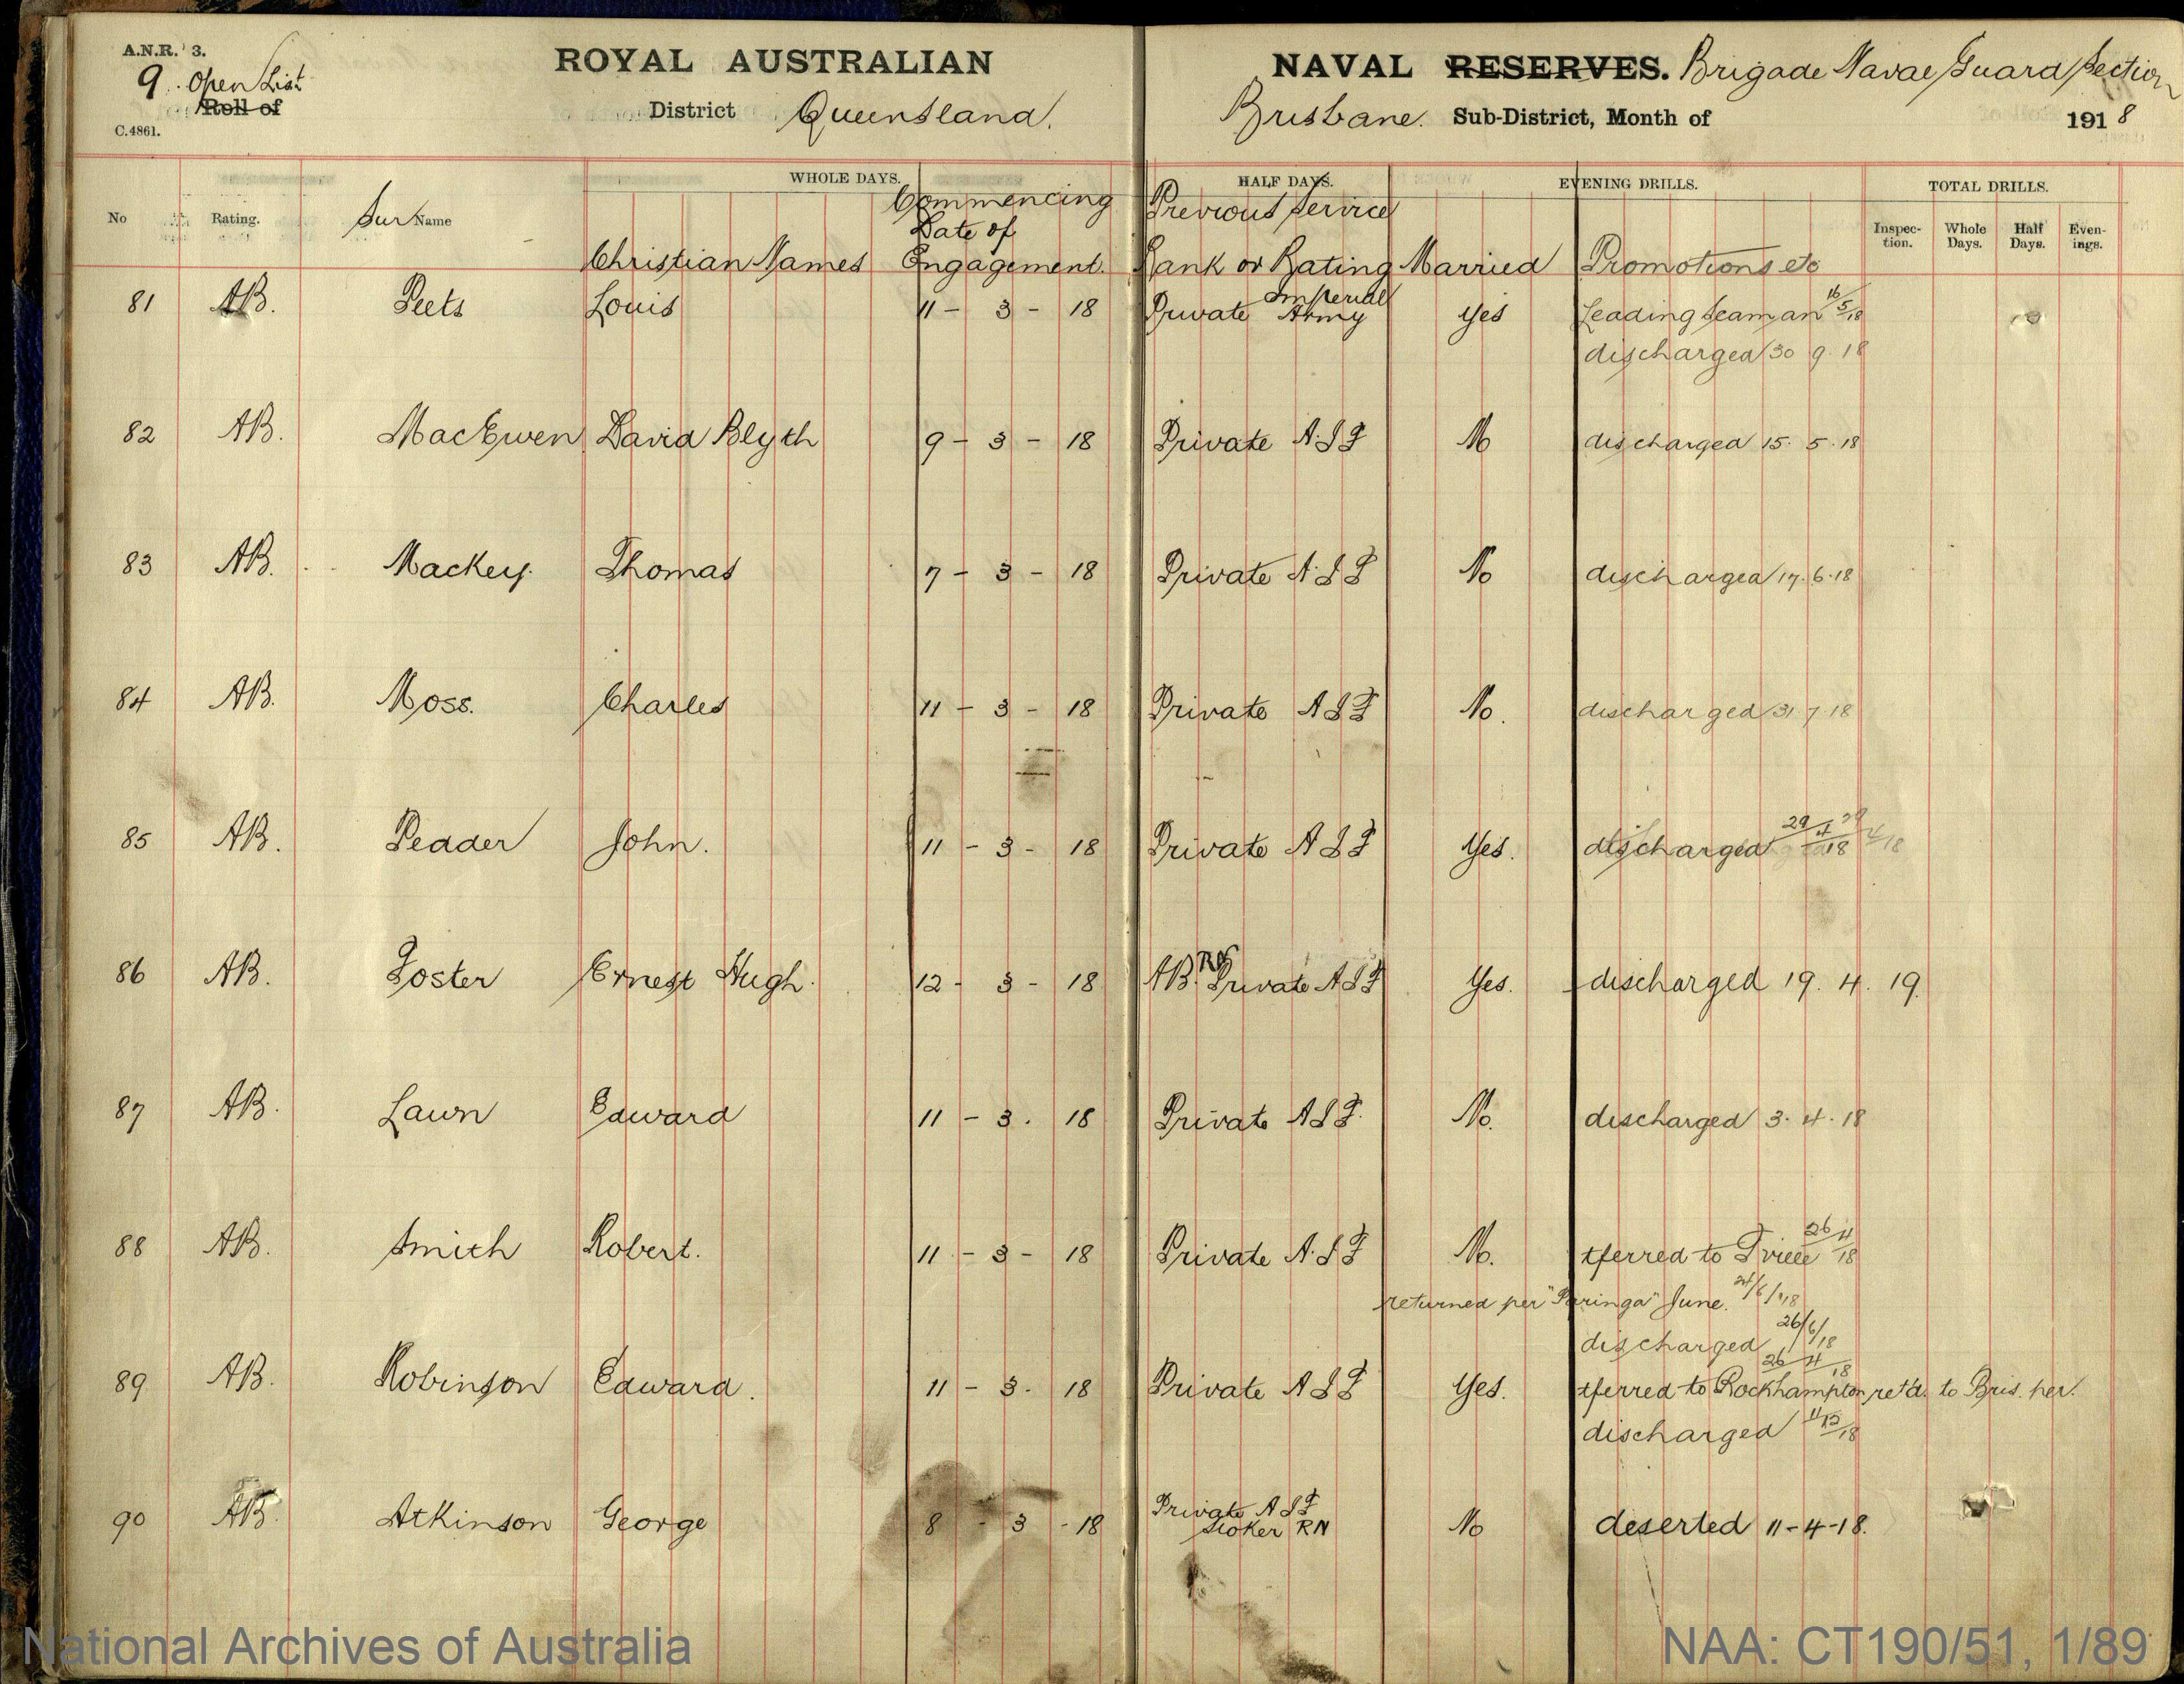 SURNAME - ROBINSON;  GIVEN NAME(S) - Edward;  OFFICIAL NUMBER - 89;  DATE OF BIRTH - [Unknown];  PLACE OF BIRTH - [Unknown];  NEXT OF KIN - [Unknown];  SERVICE/STATION - Queensland;  REGISTRATION DATE -  11 March 1918